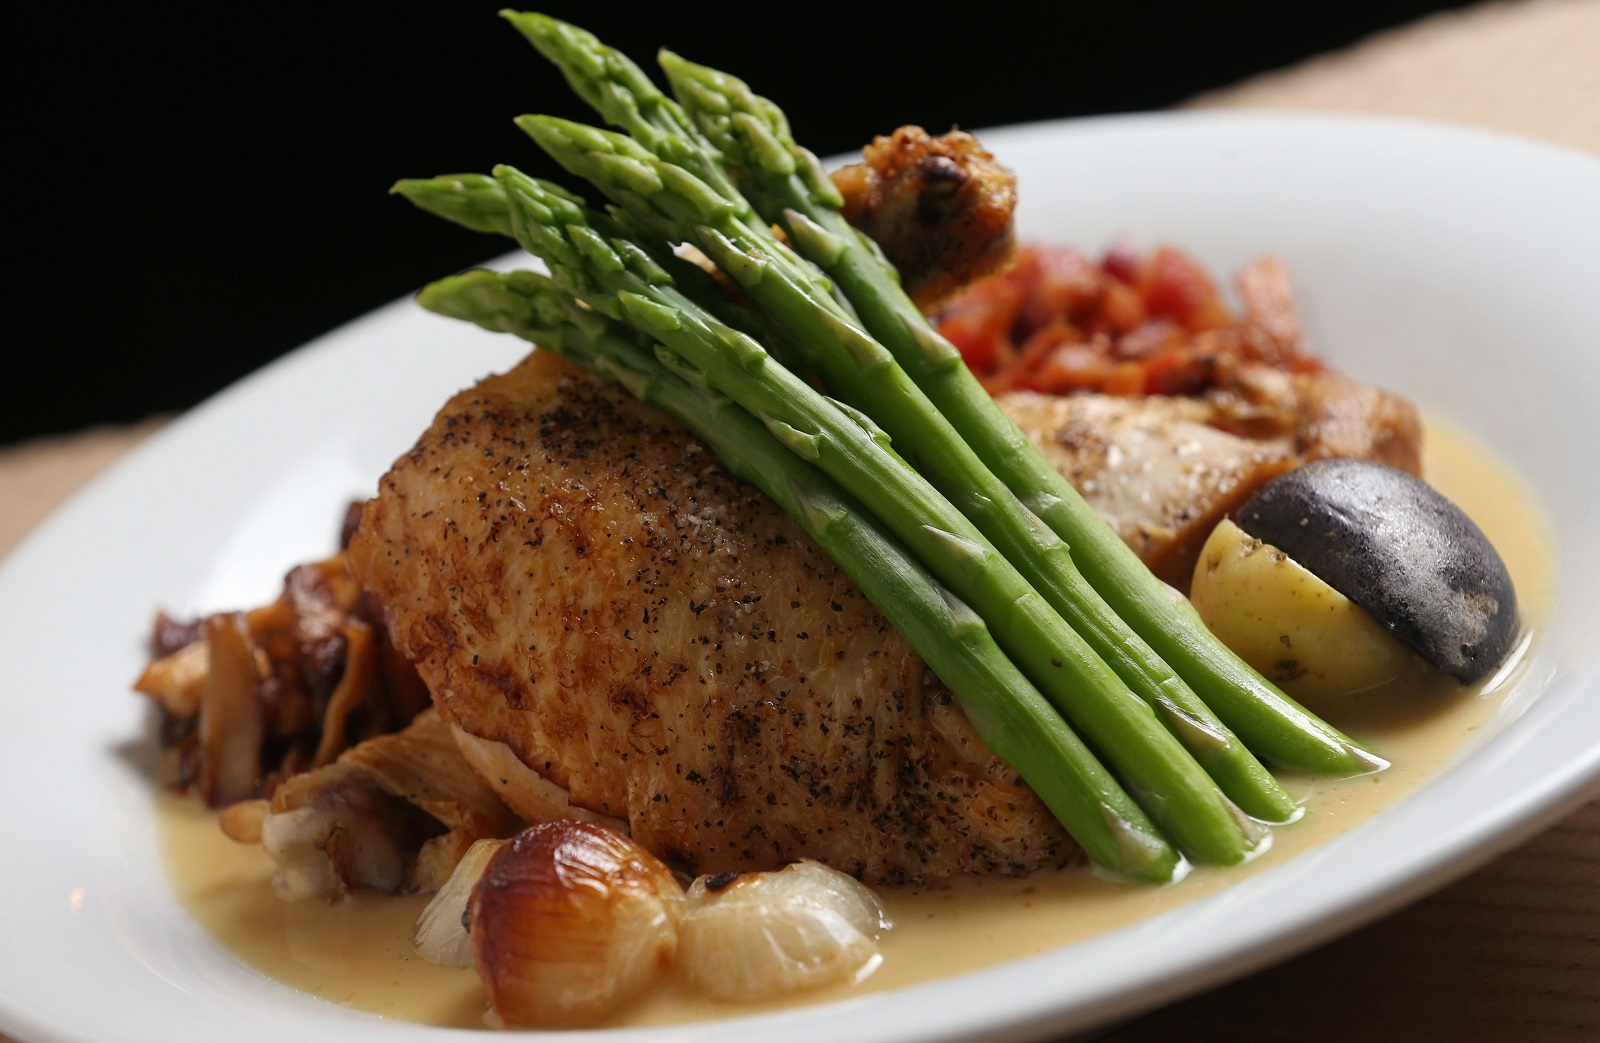 Coco's Poulet Grand-mere is prepared with braised bone-in chicken, caramelized mushrooms, whole roasted garlic, pearl onions, lardons, potatoes and asparagus. (Sharon Cantillon/Buffalo News)